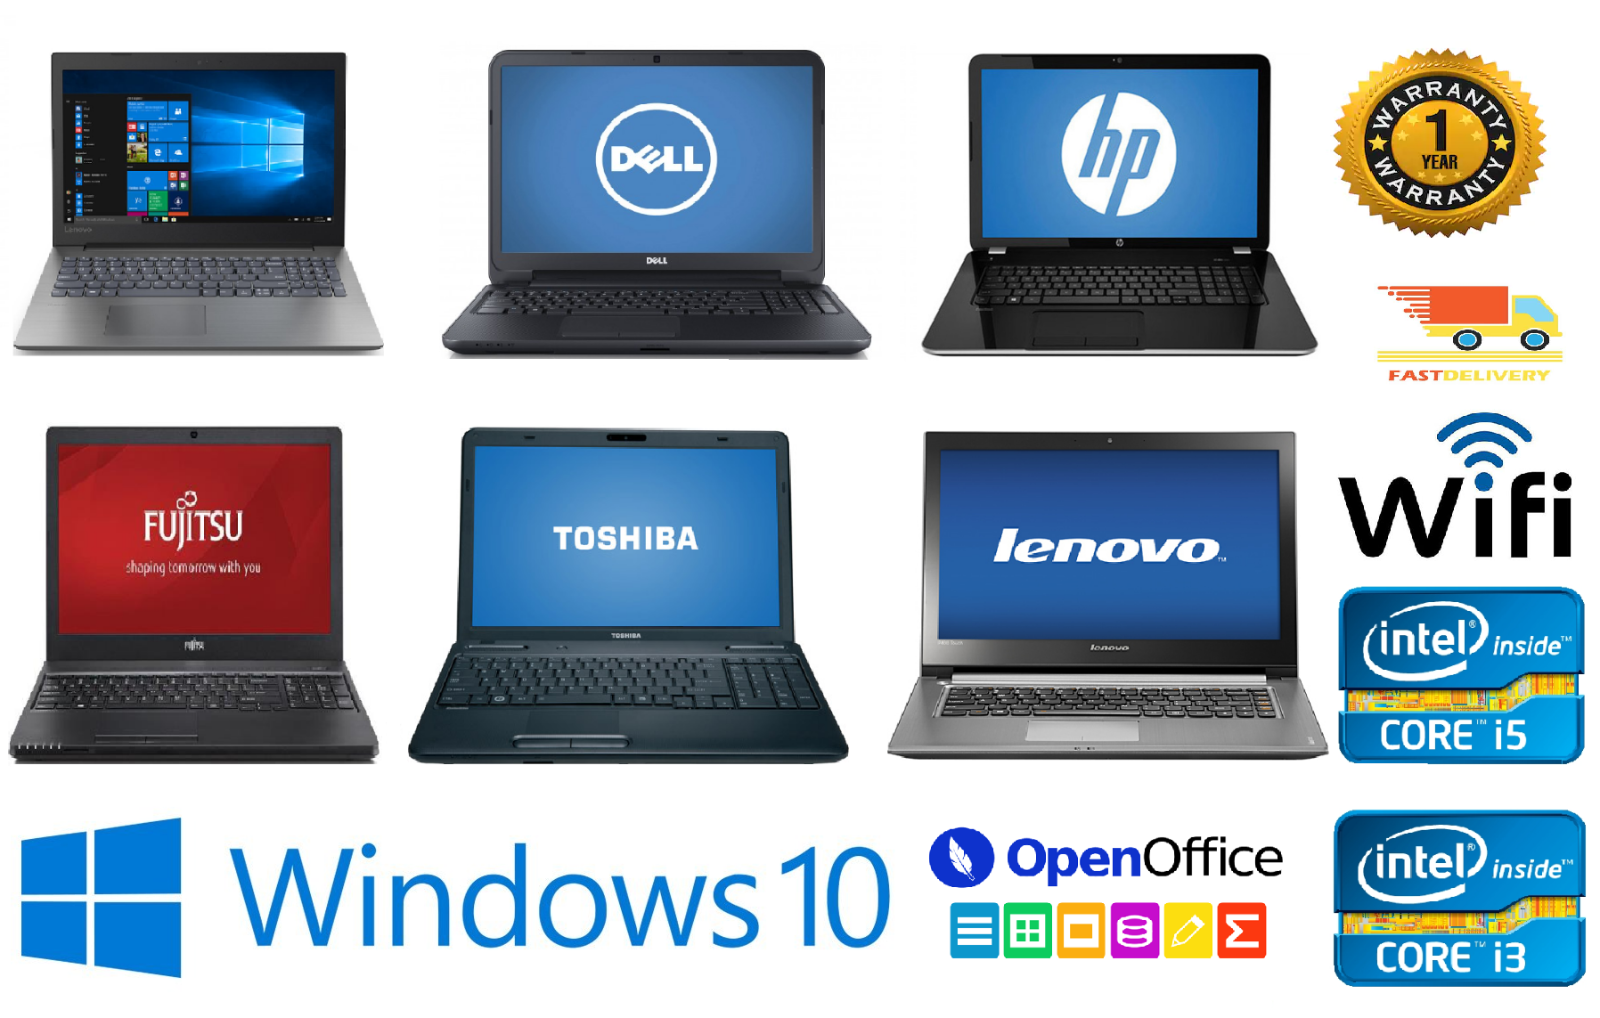 Laptop Windows - FAST CHEAP Wi-Fi WINDOWS 10 LAPTOP CORE i5 i3 4GB/8GB RAM 320GB/500GB HDD